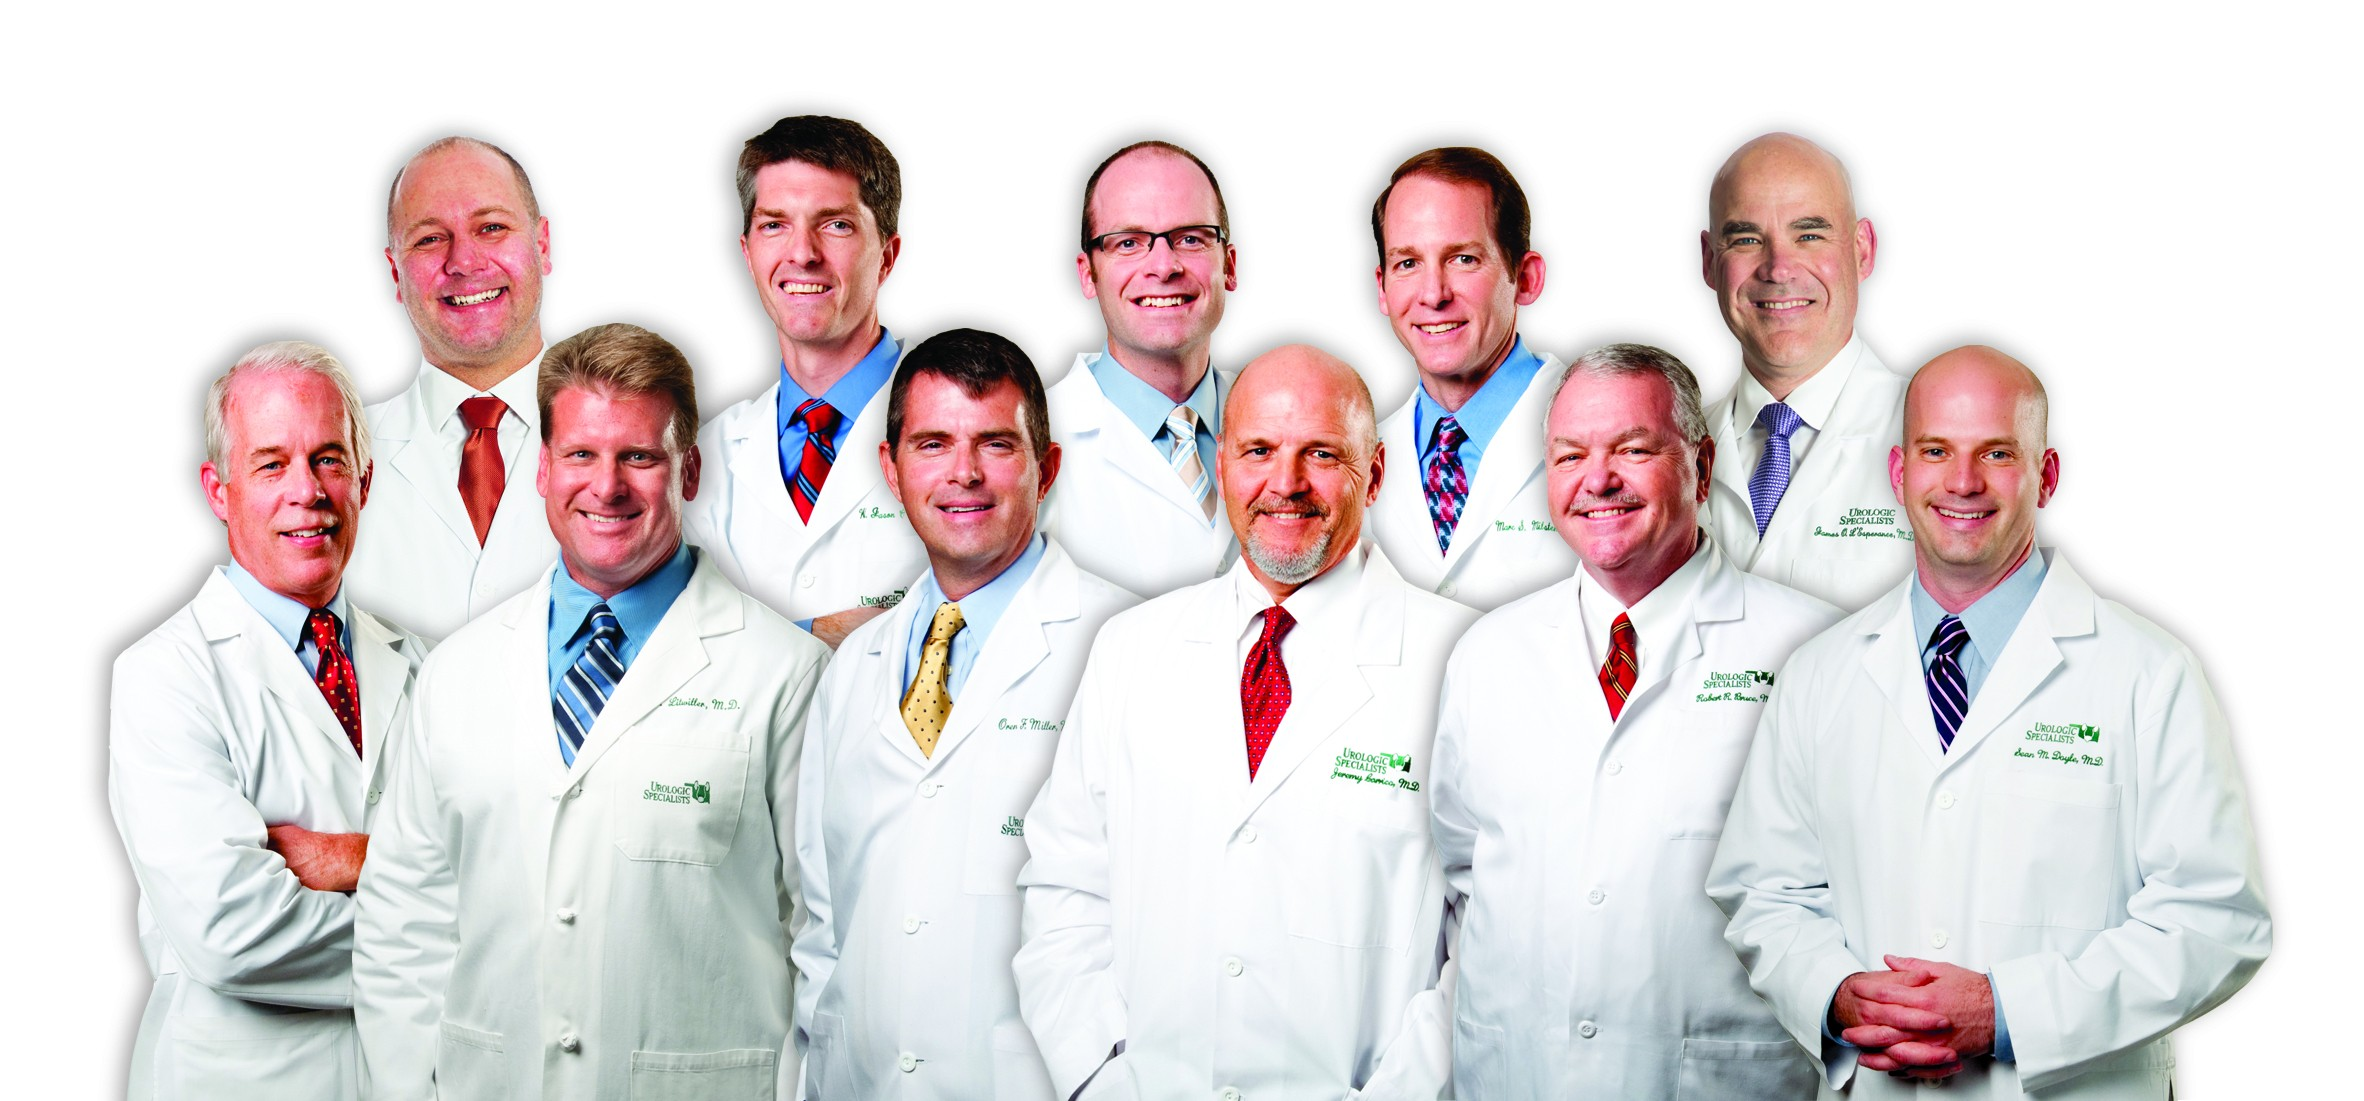 Front, from left, J. Steve Miller, MD, FACS; Scott Litwiller, MD, FACS; Oren Miller, MD, FACS, FAAP; W. Todd Brookover, MD; Robert R. Bruce, MD; Sean M. Doyle, MD. Back, from left, James B. McGeady, MD; W. Jason Cook, MD, FACS; Cole B. Davis, MD; Marc S. Milsten, MD, FACS; James O. L'Esperance, MD.